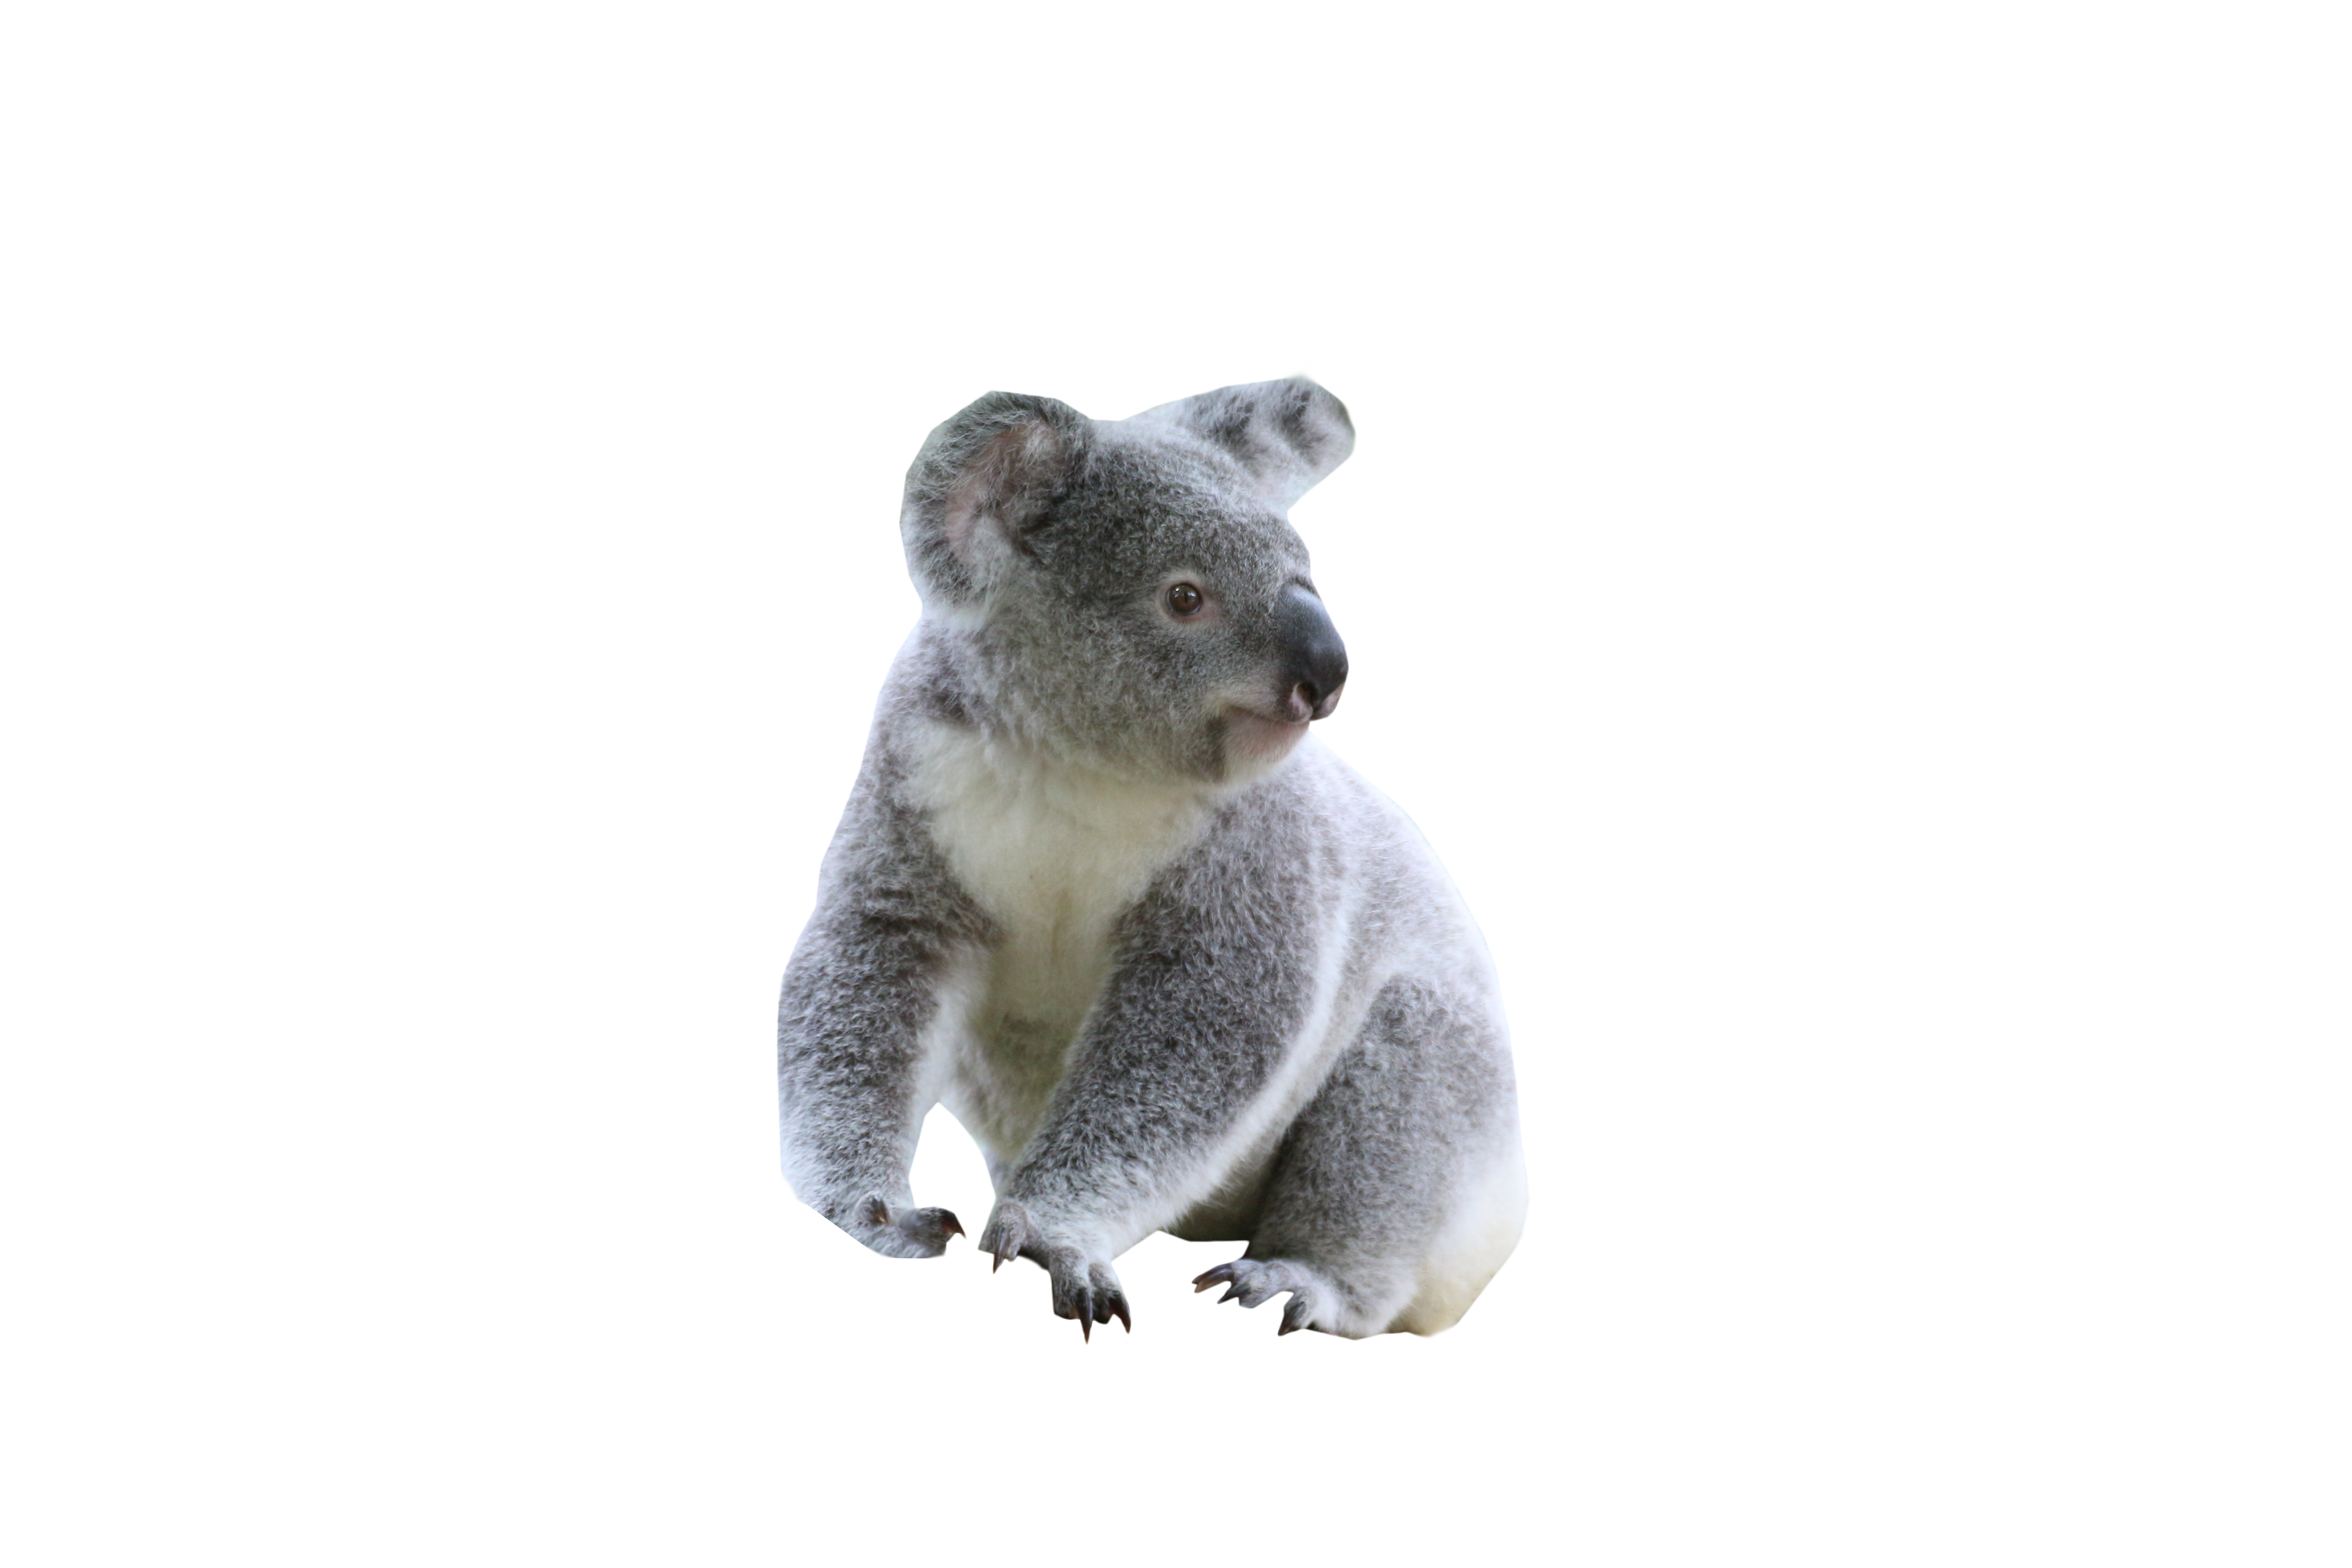 cute koala png image purepng free transparent cc0 png cute animals clip art cute animal clipart free